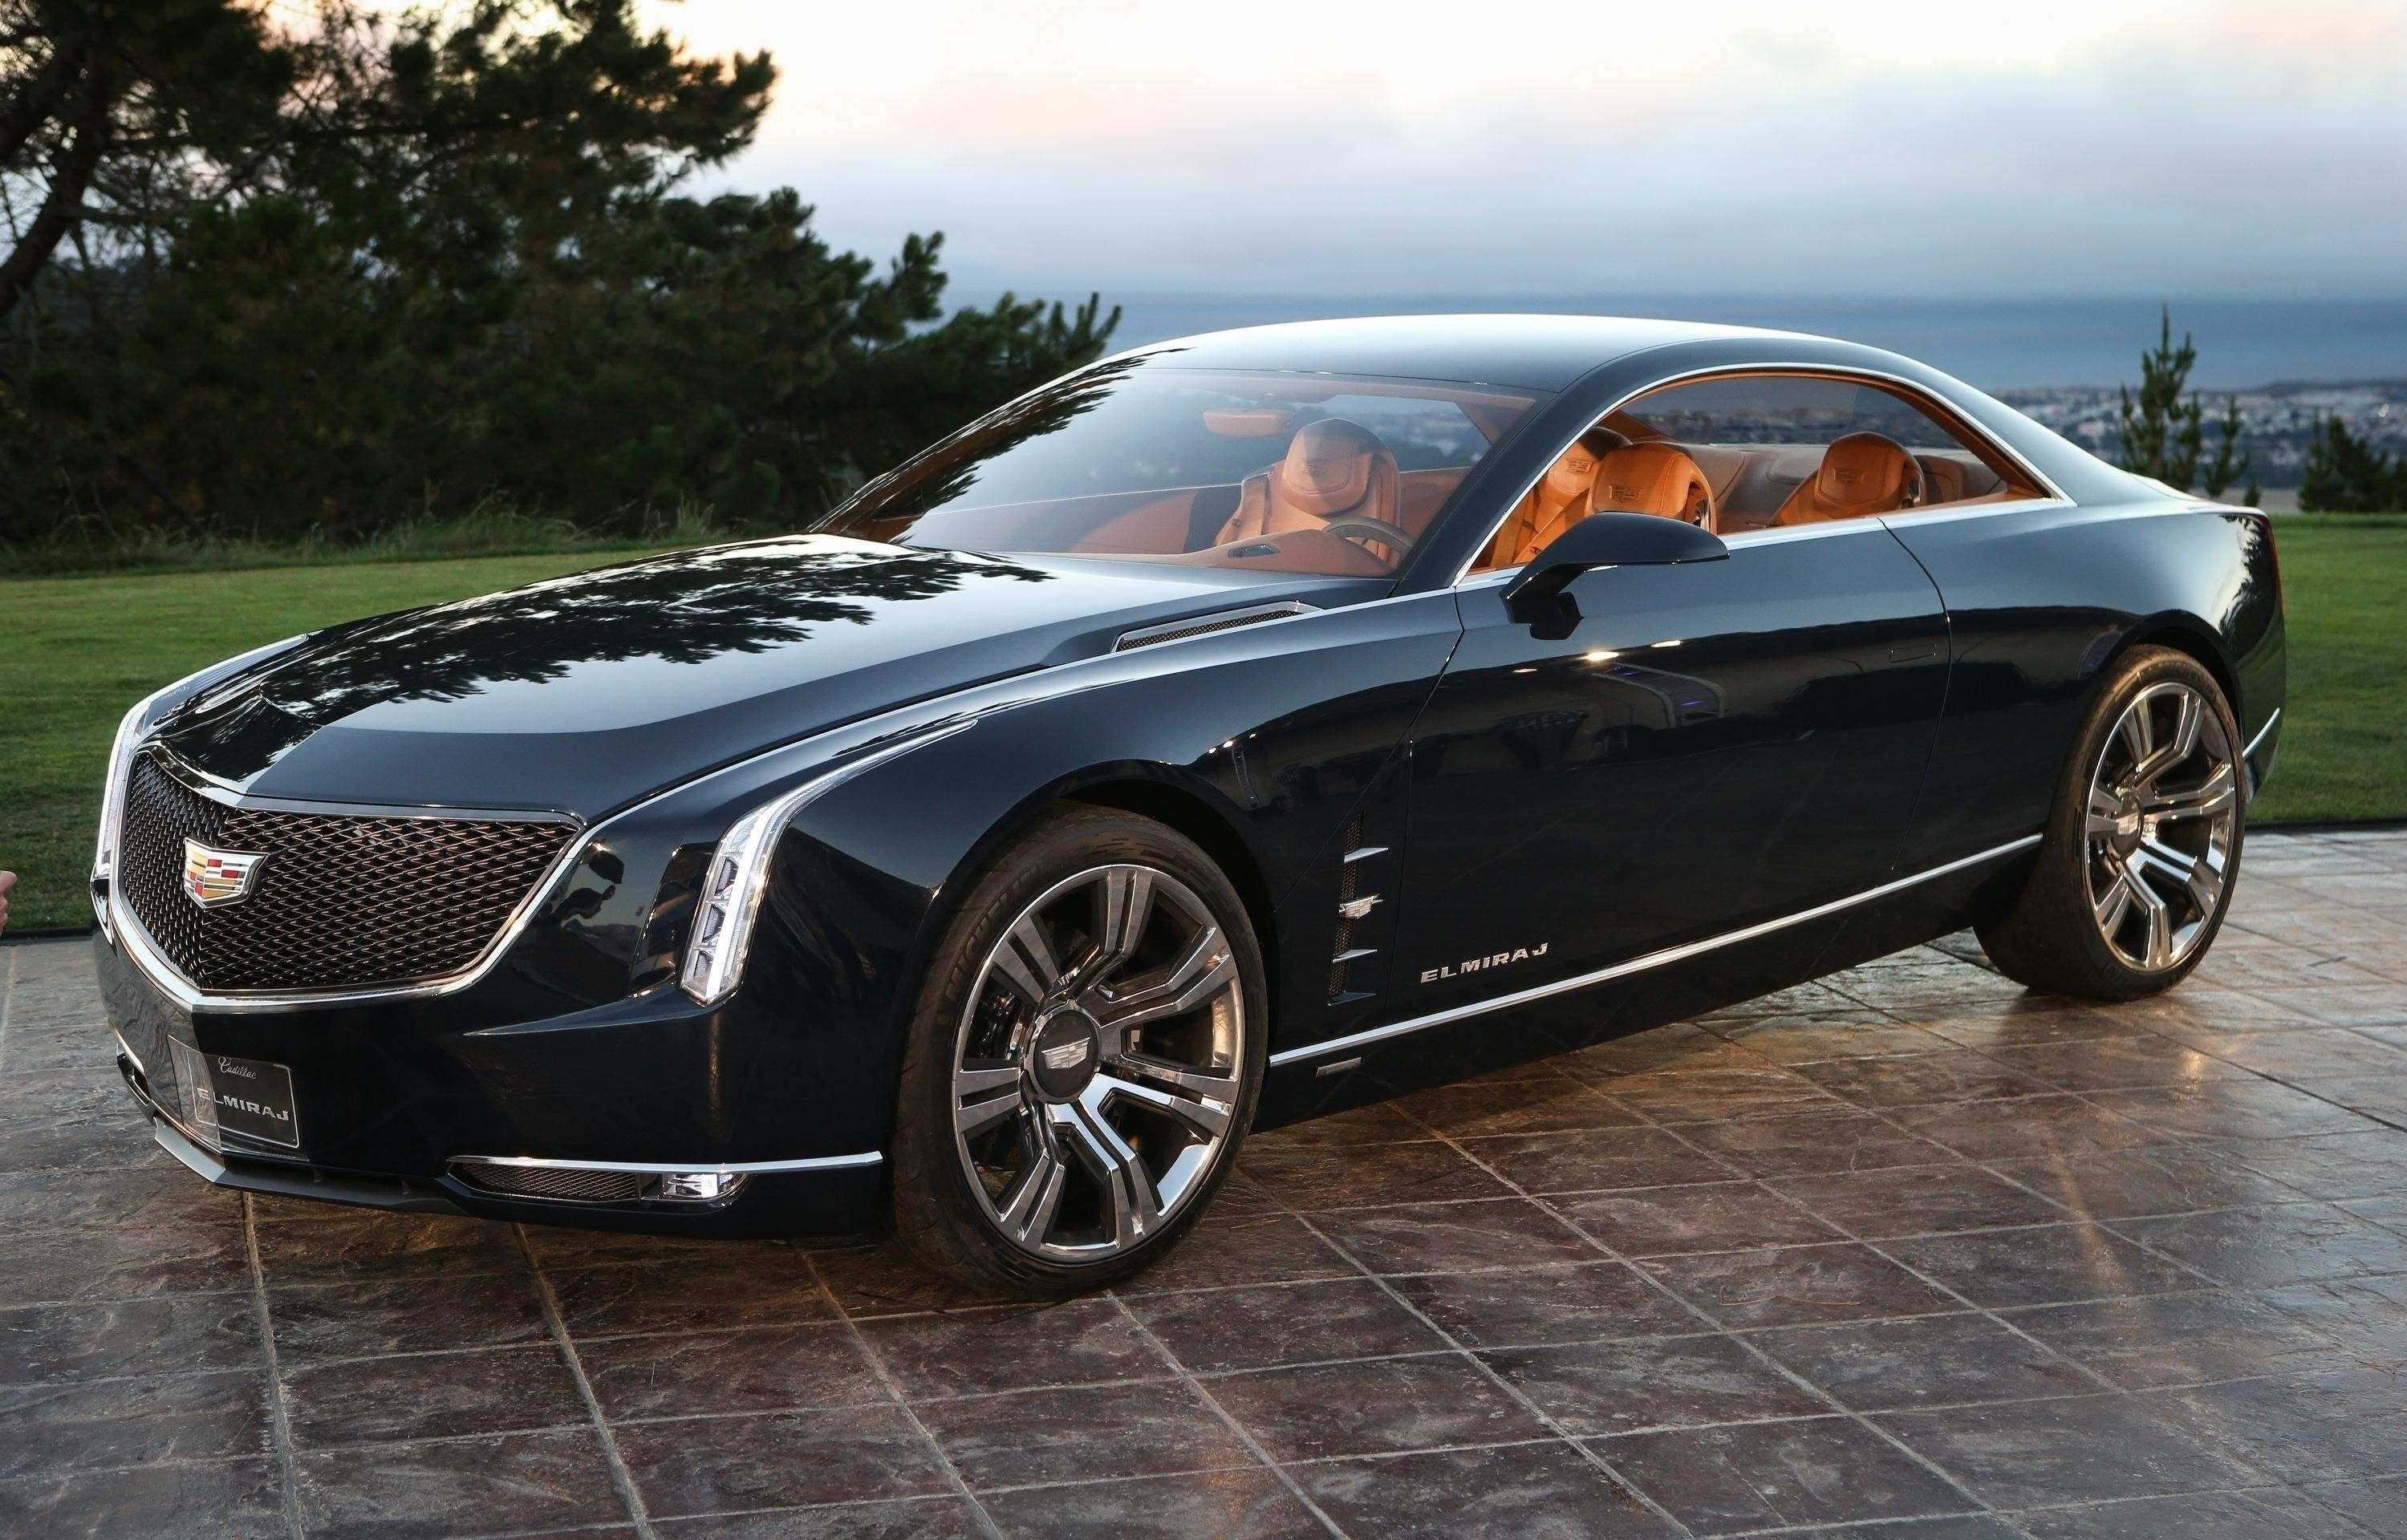 91 All New 2019 Cadillac Dts Prices with 2019 Cadillac Dts